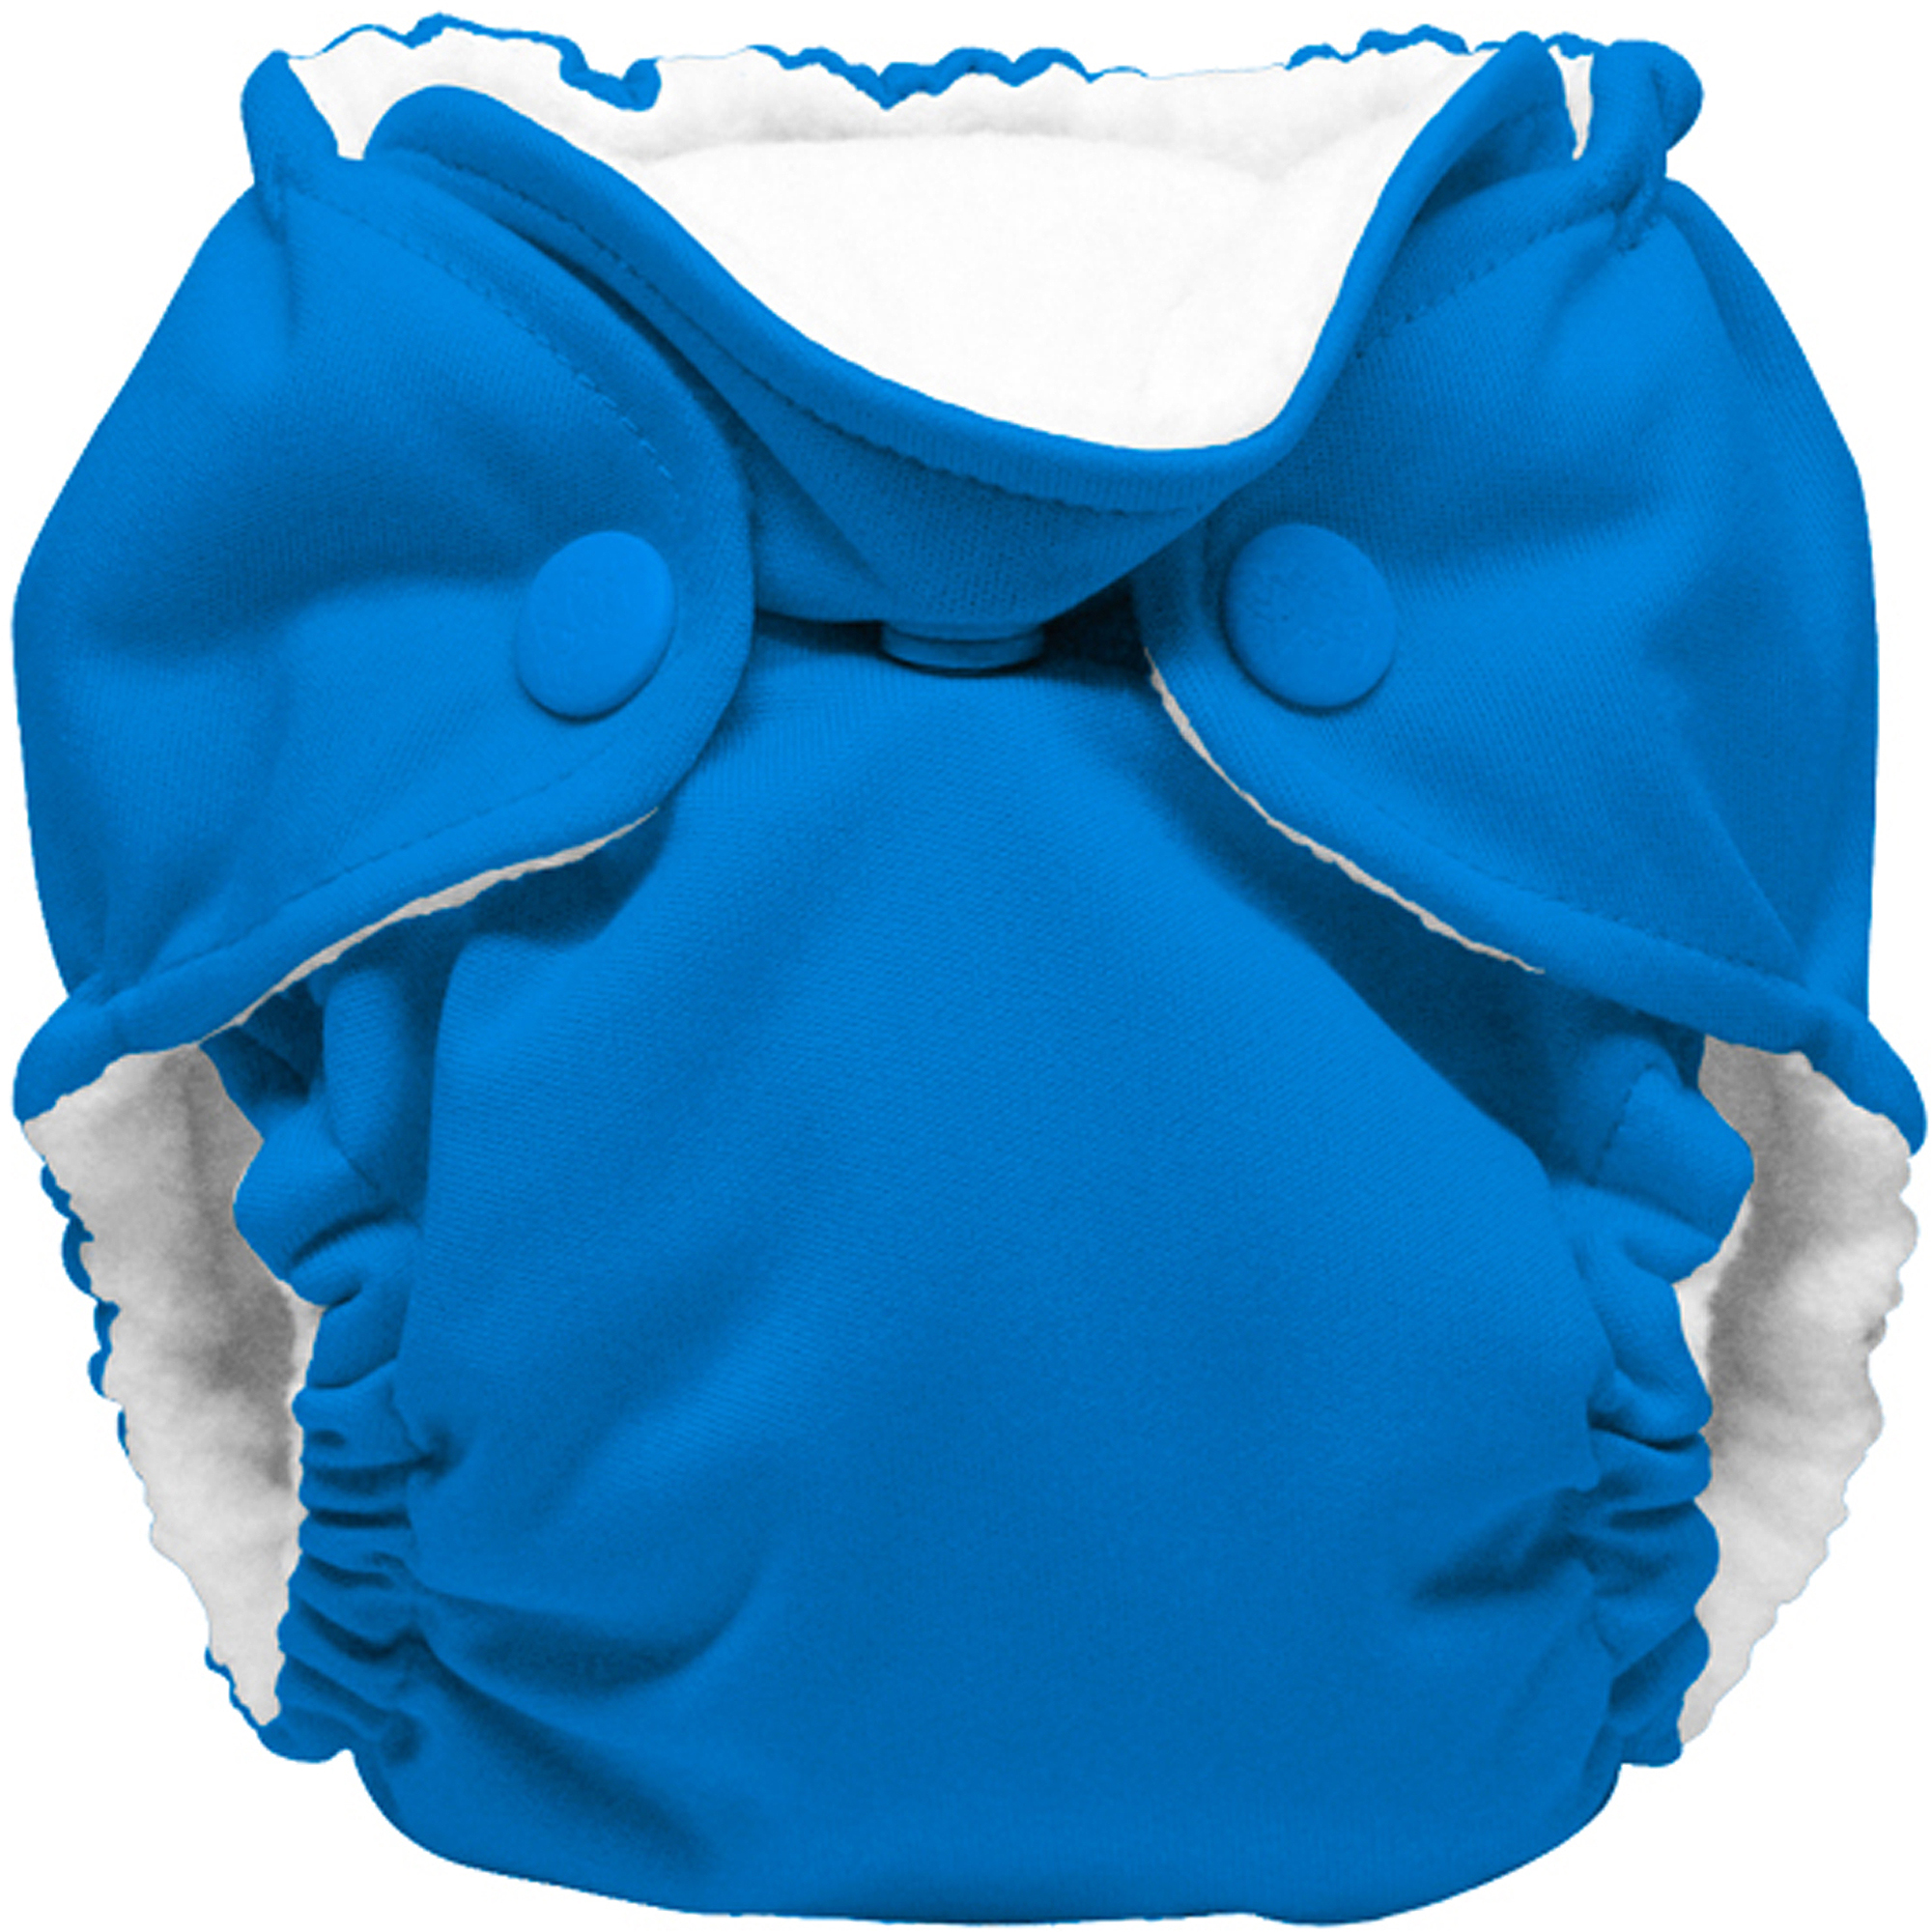 Kanga Care Lil Joey Newborn All in One Cloth Diaper, 2 count